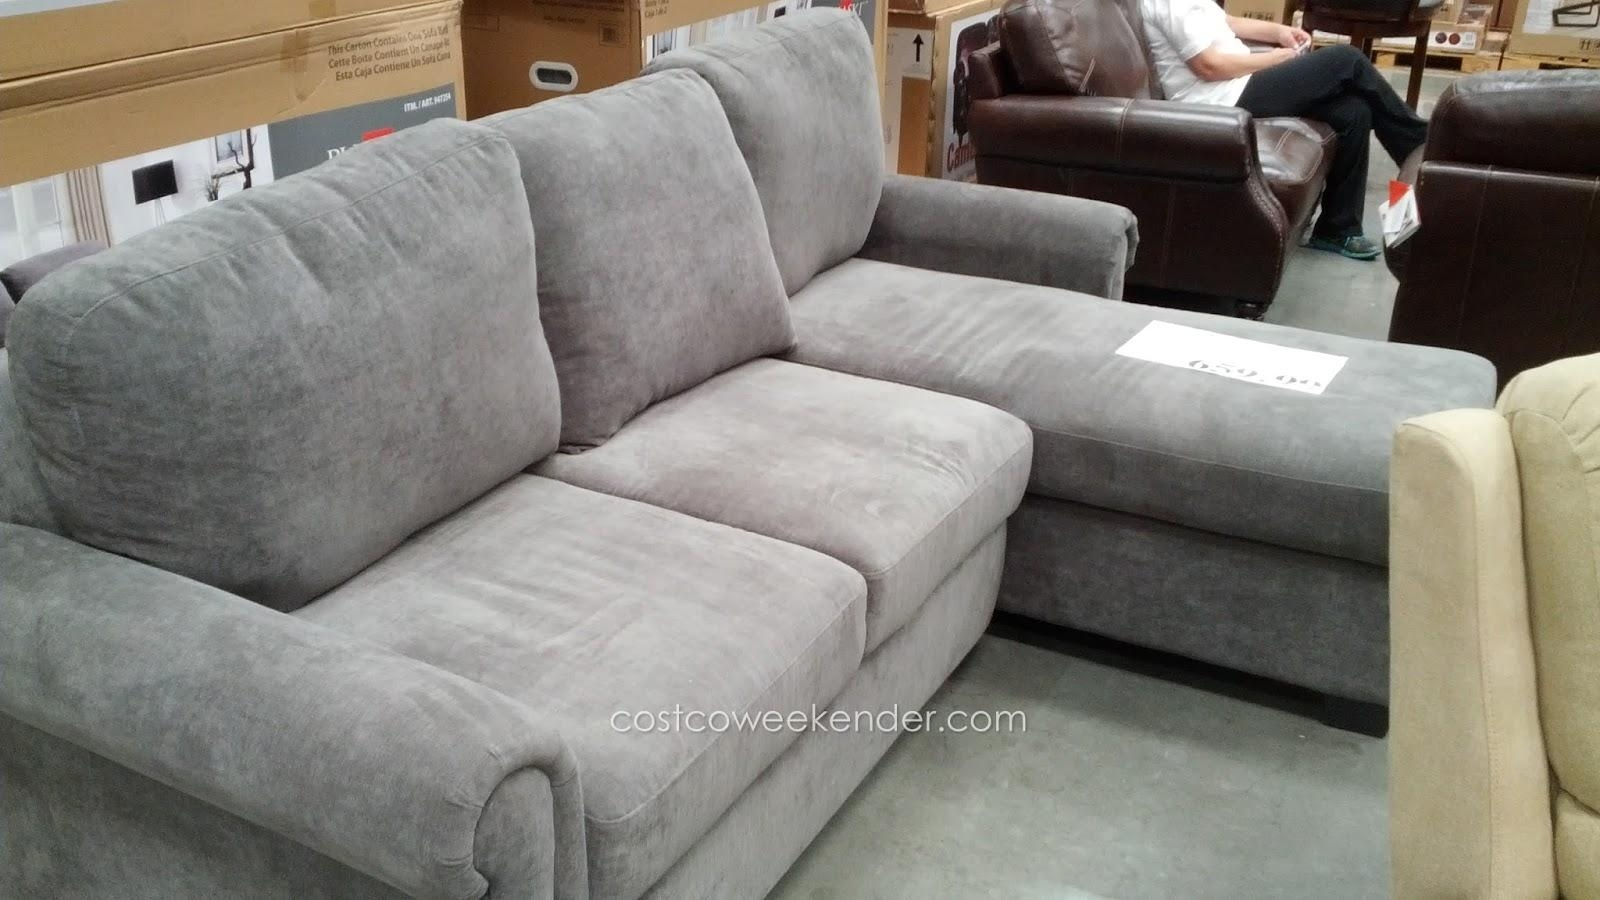 Sofa Bed With Storage Chaise 17 With Sofa Bed With Storage Chaise For Chaise Sofa Beds With Storage (Image 12 of 20)